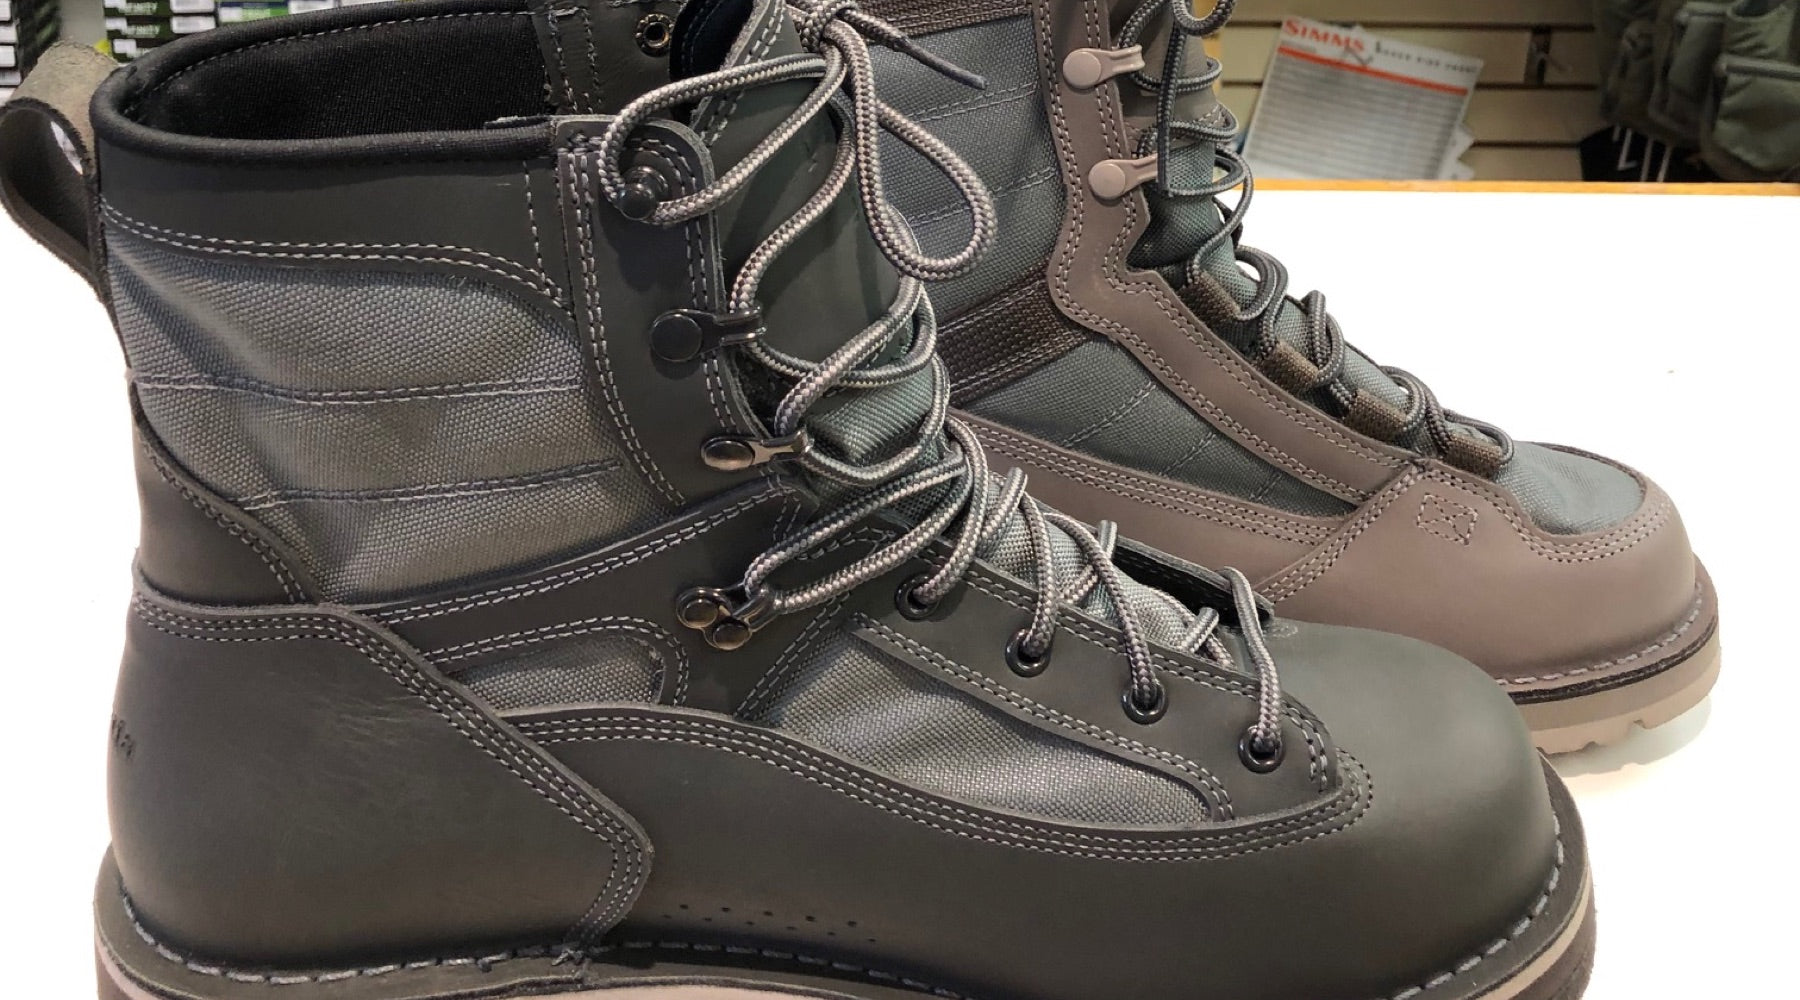 Patagonia Danner Wading Boot Review 2